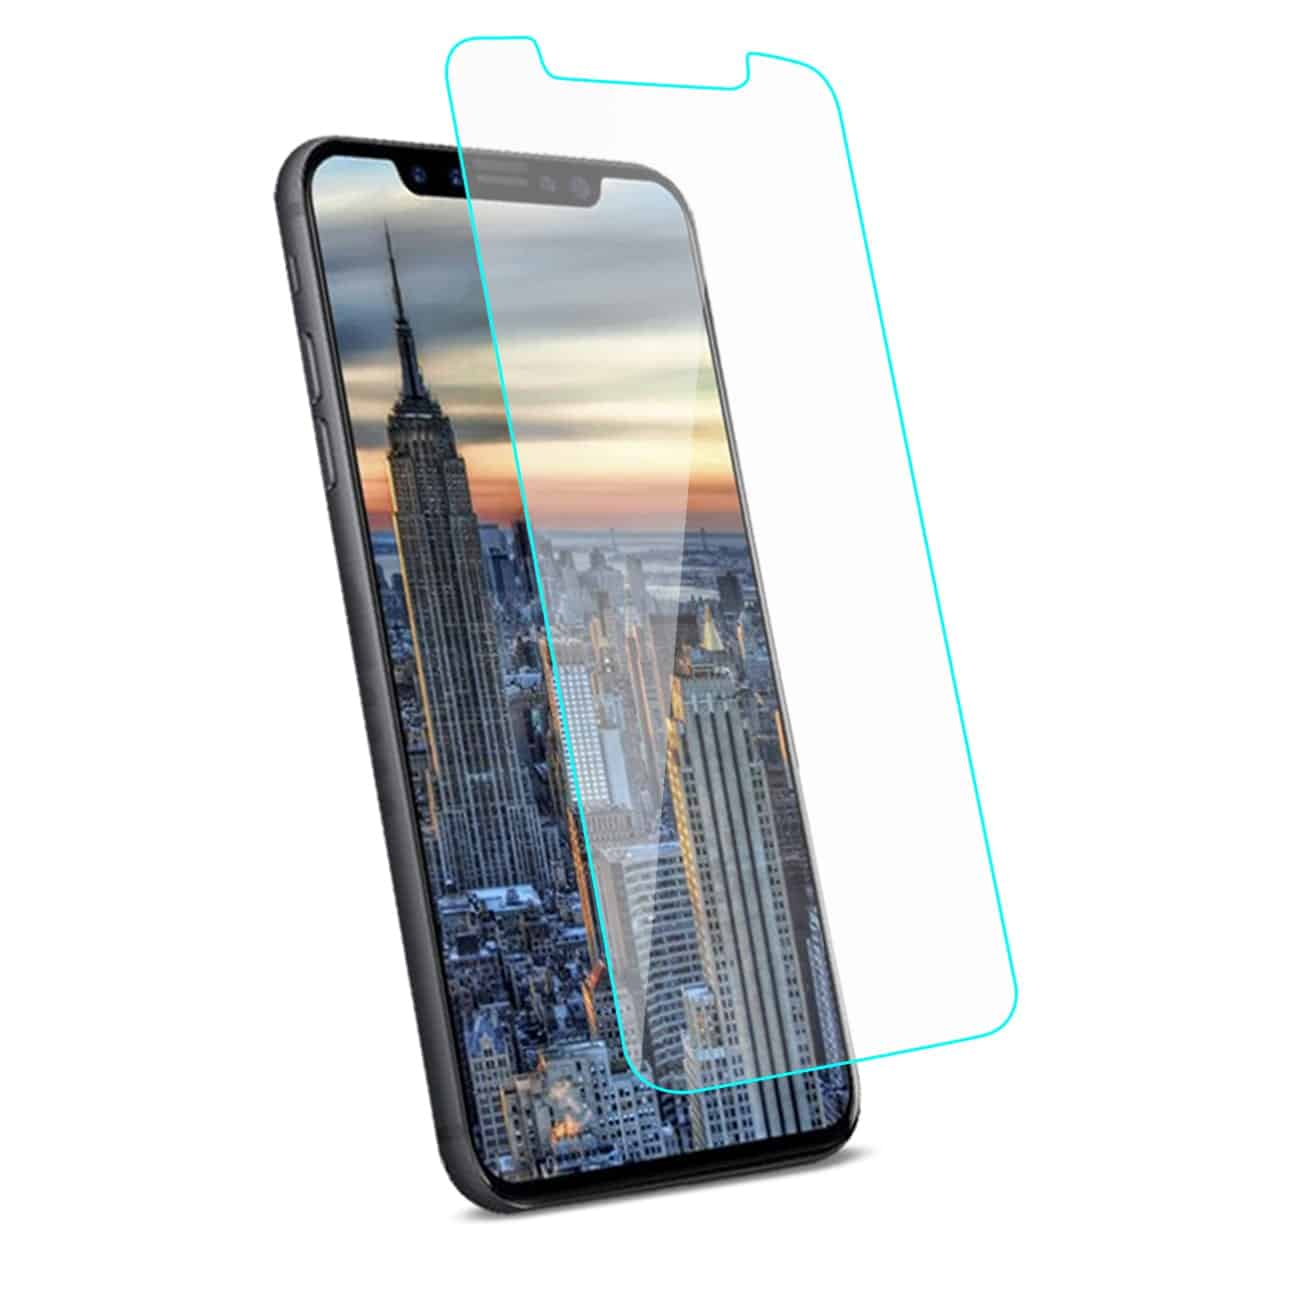 IPHONE X TEMPERED GLASS SCREEN PROTECTOR IN CLEAR